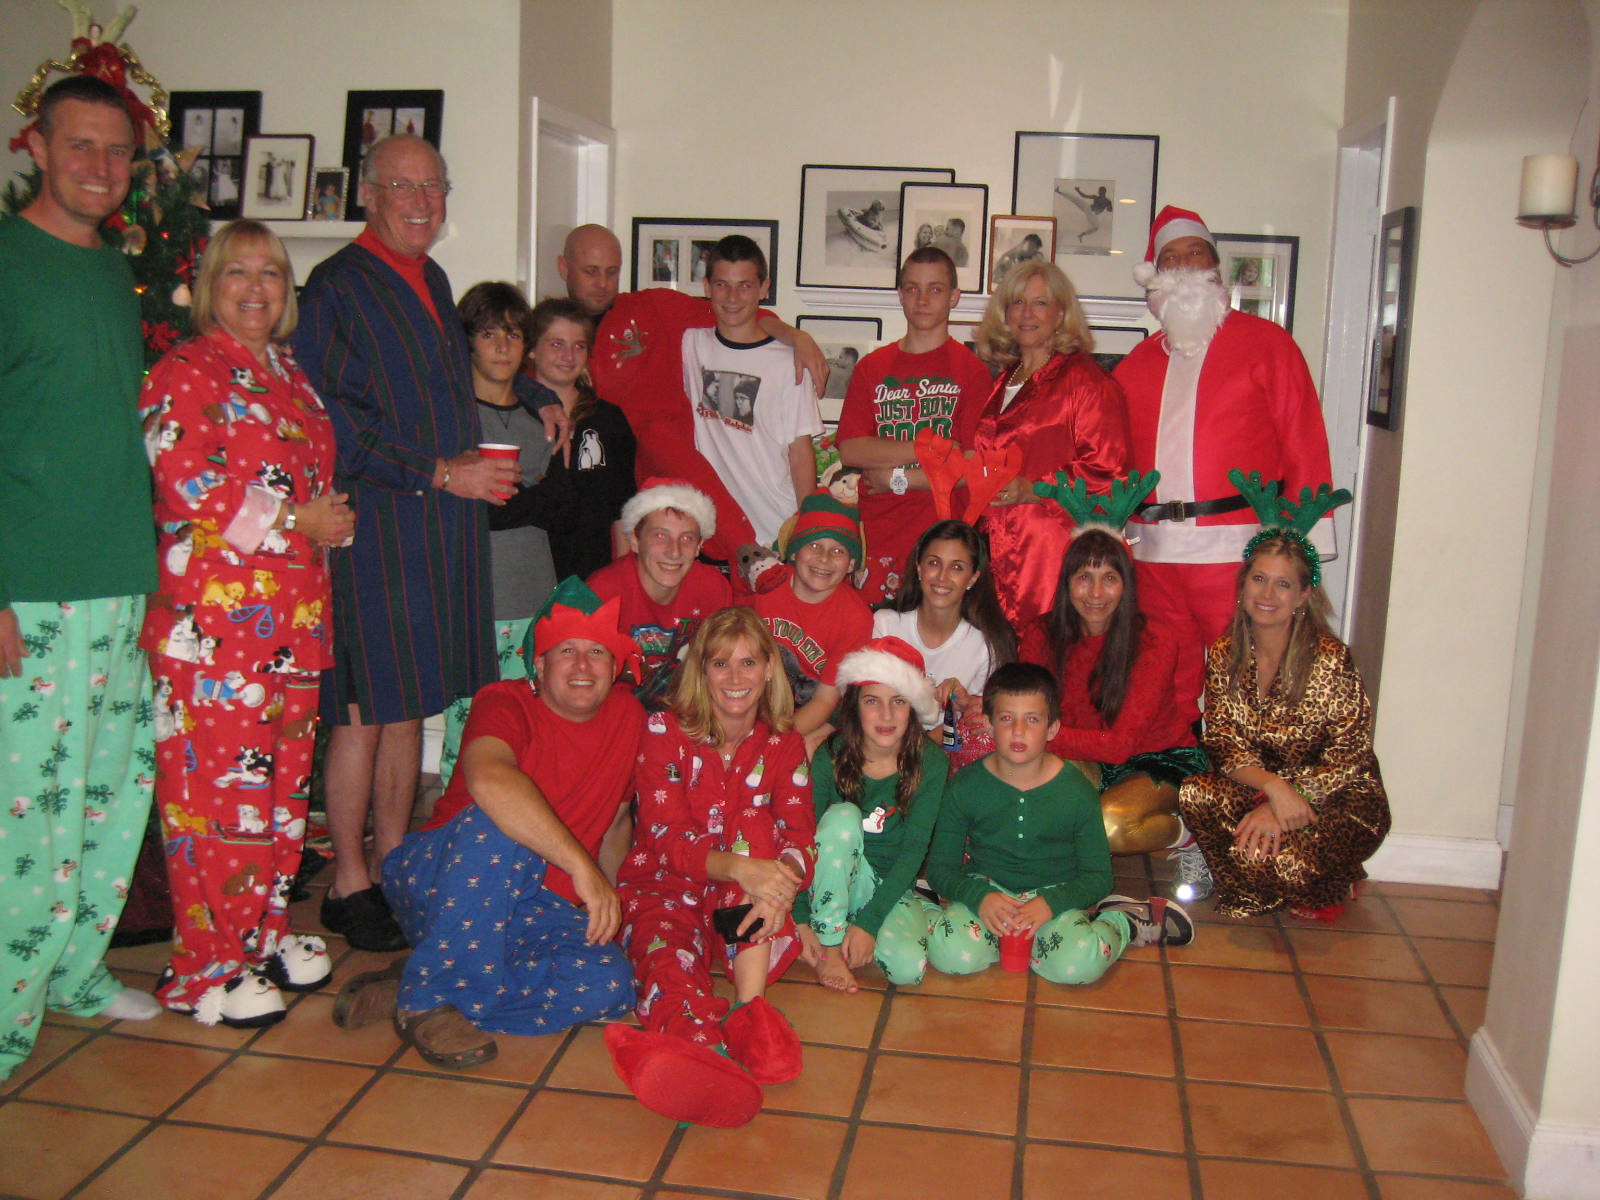 Christmas Party Themes Ideas For Adults  Creative Party Ideas by Cheryl Christmas Pajama Party